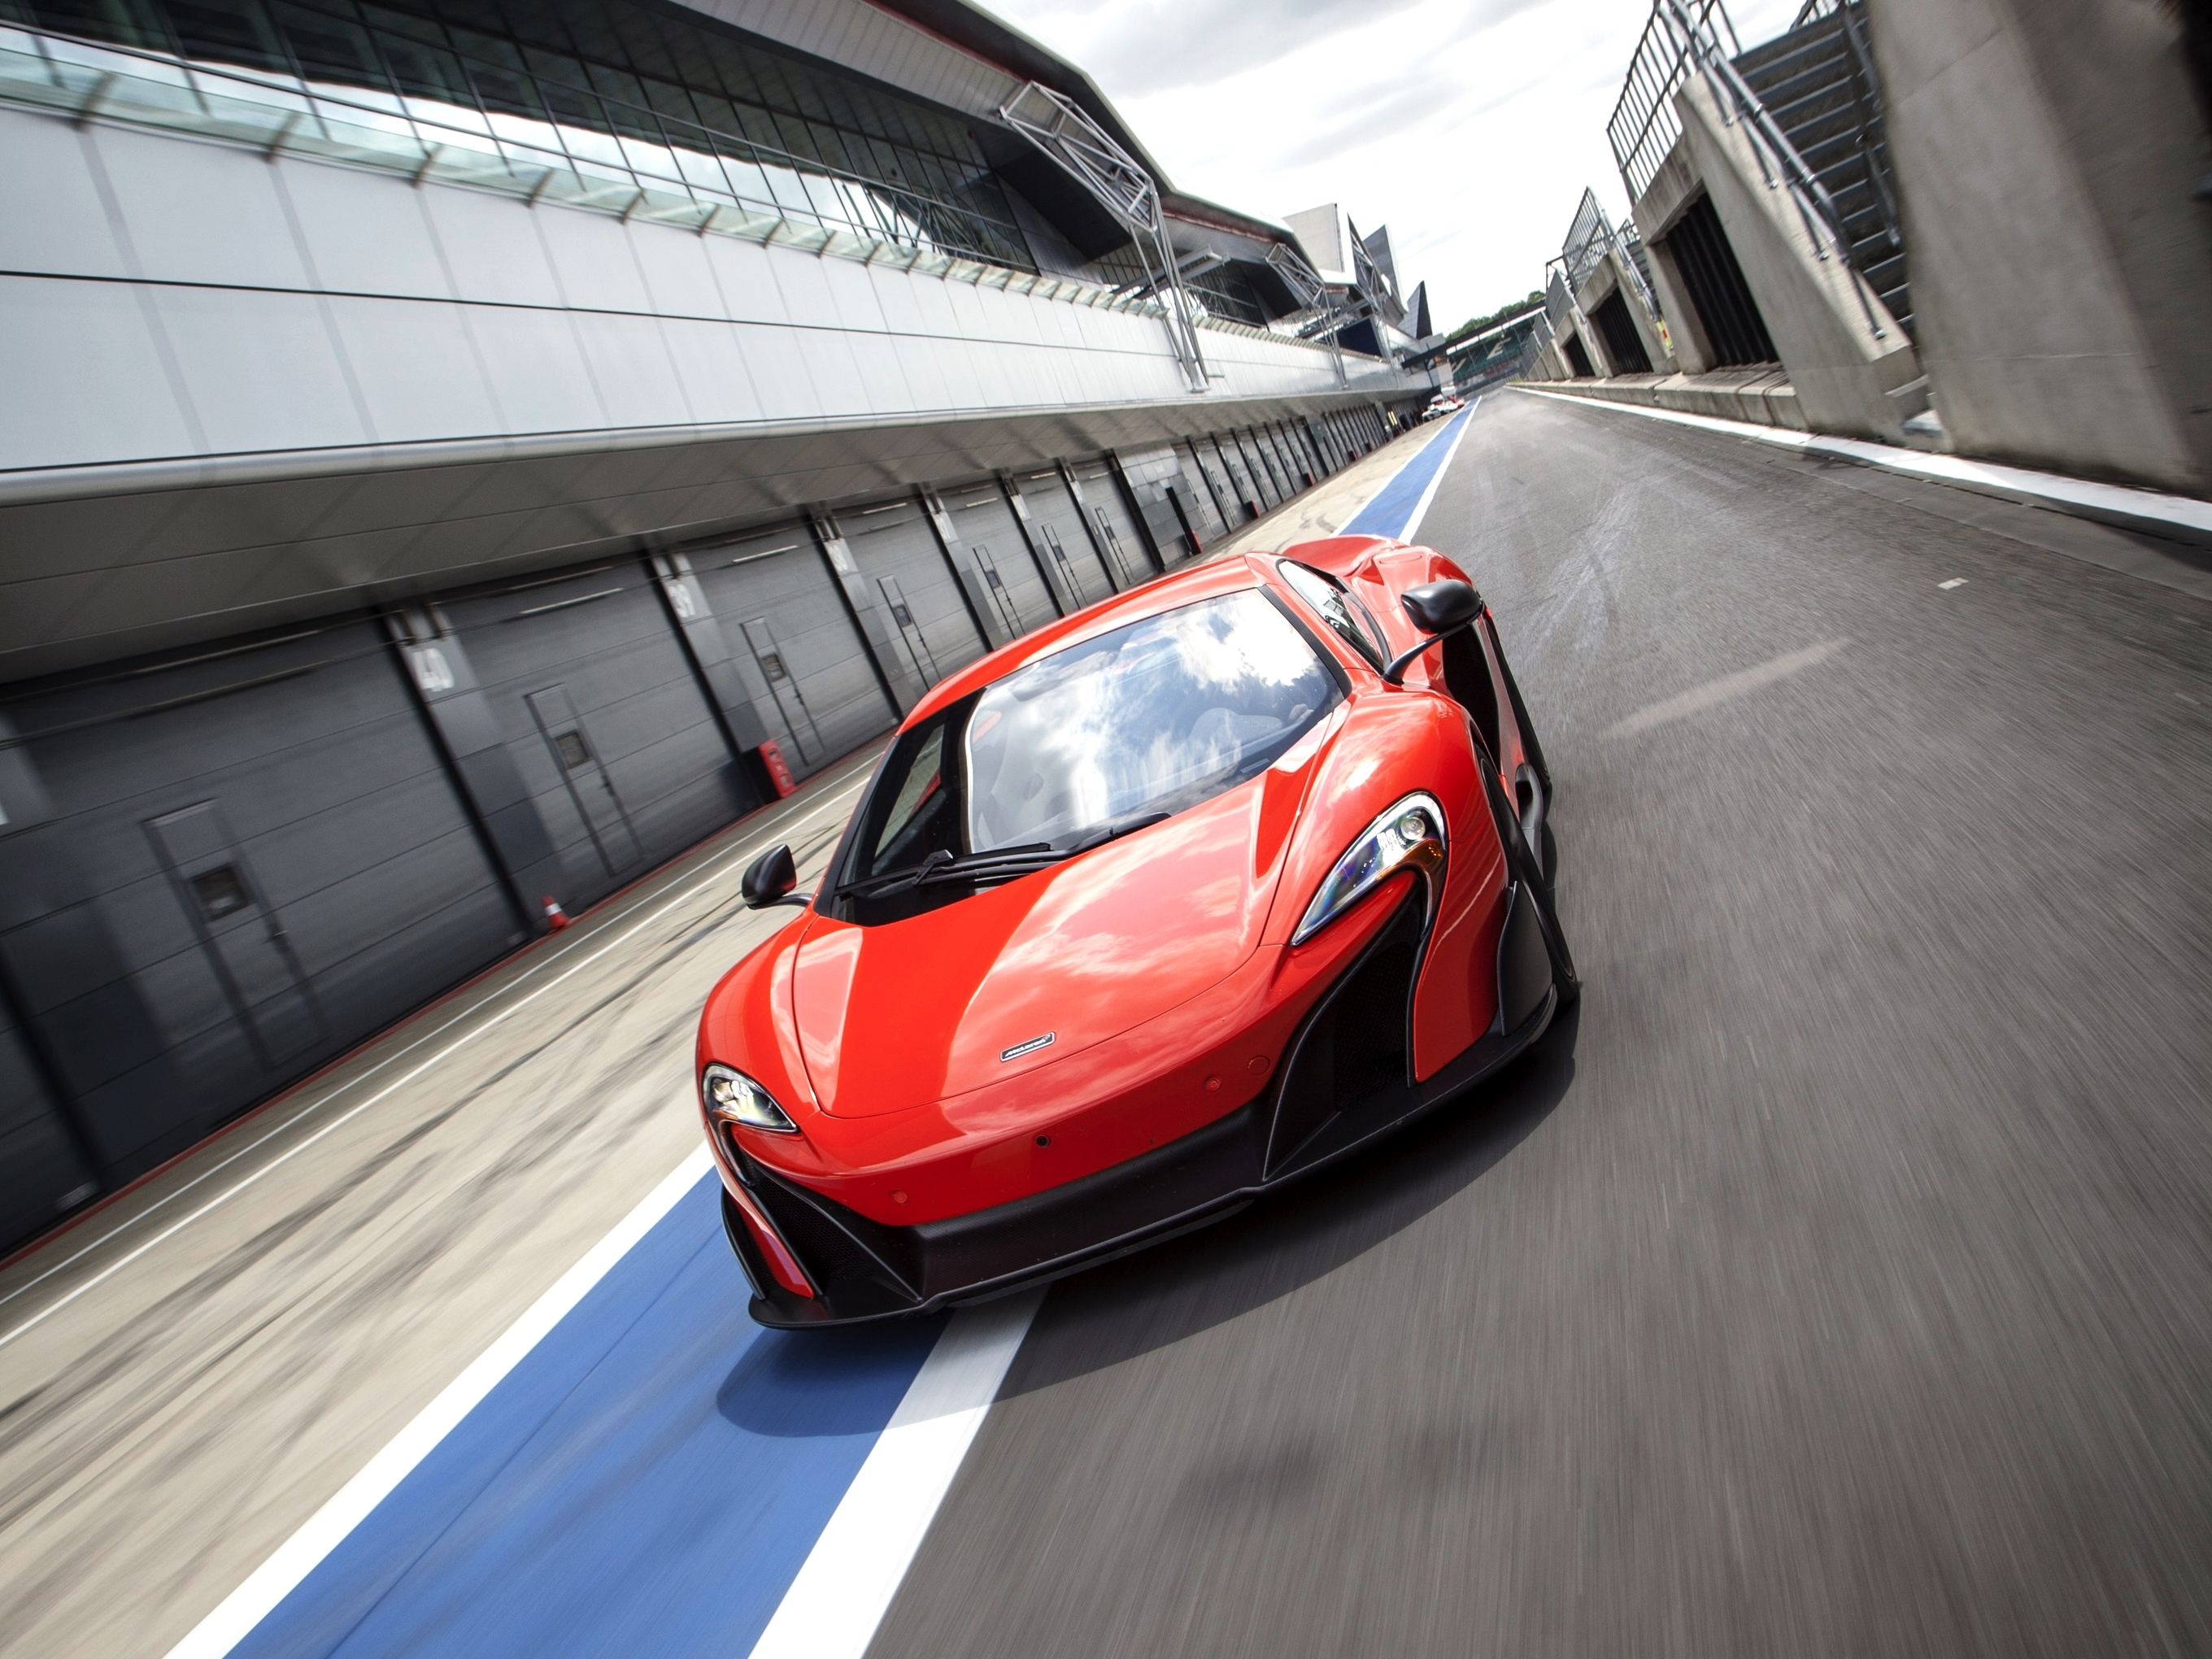 133138 download wallpaper Cars, Mclaren, 675Lt, Us-Spec, Traffic, Movement screensavers and pictures for free